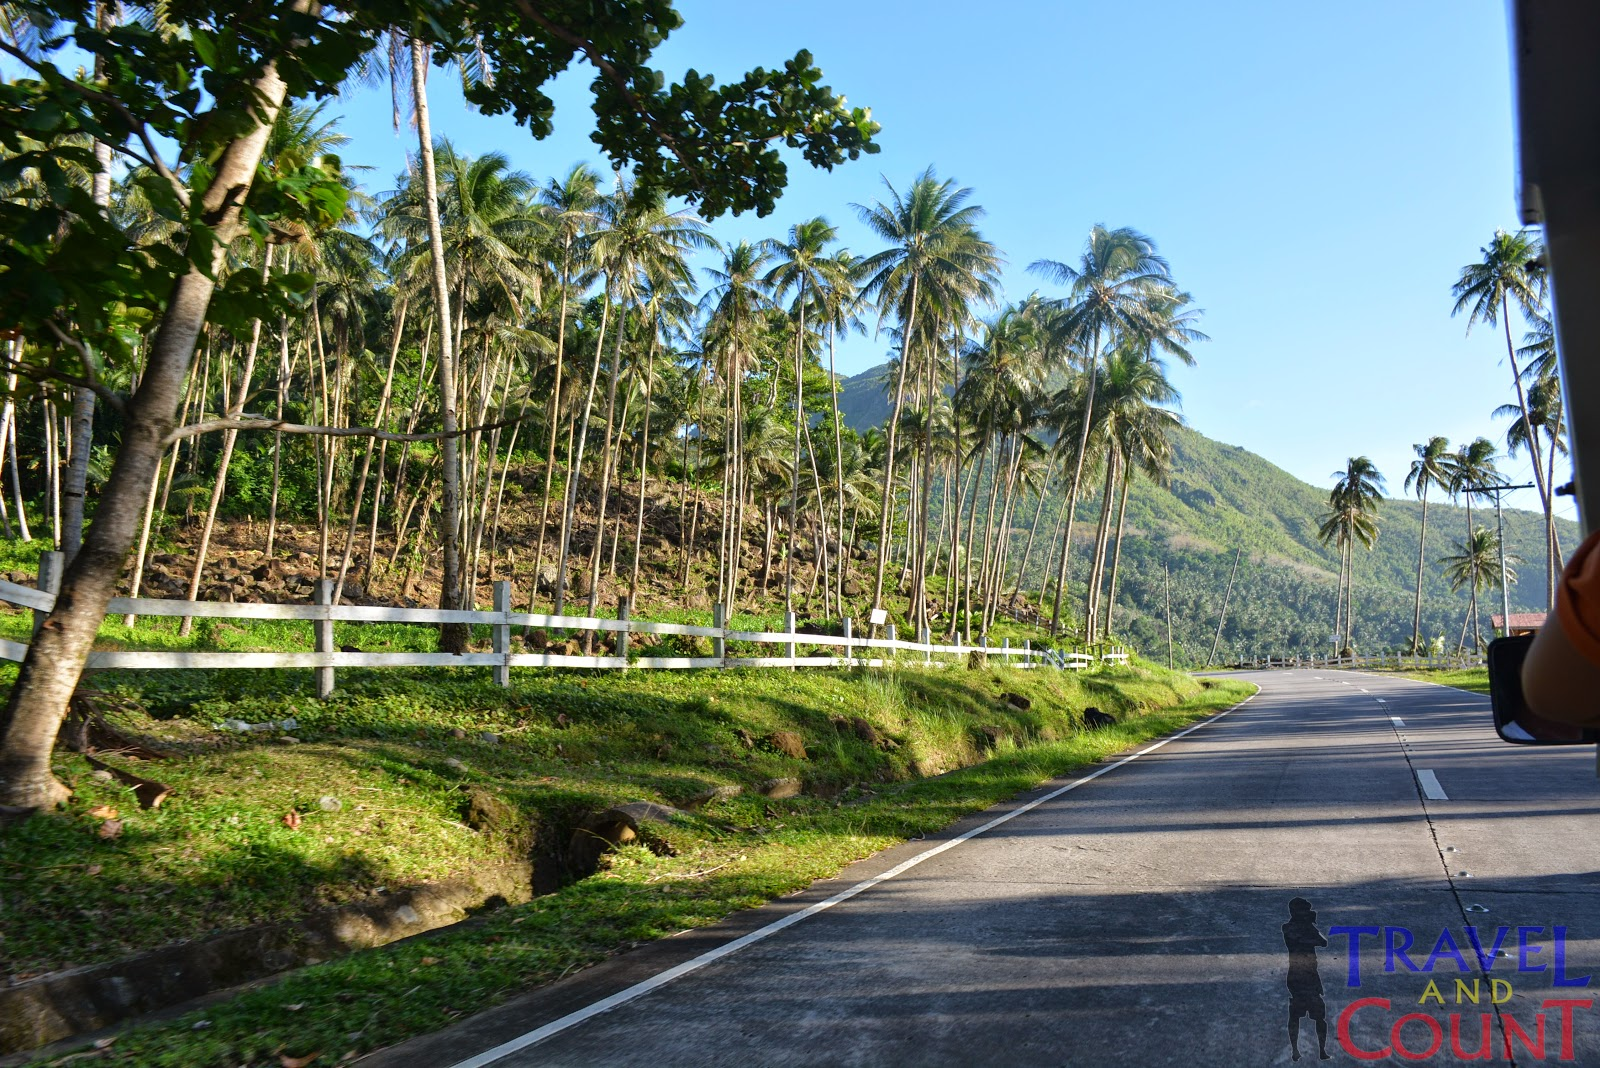 Roads of Camiguin Island